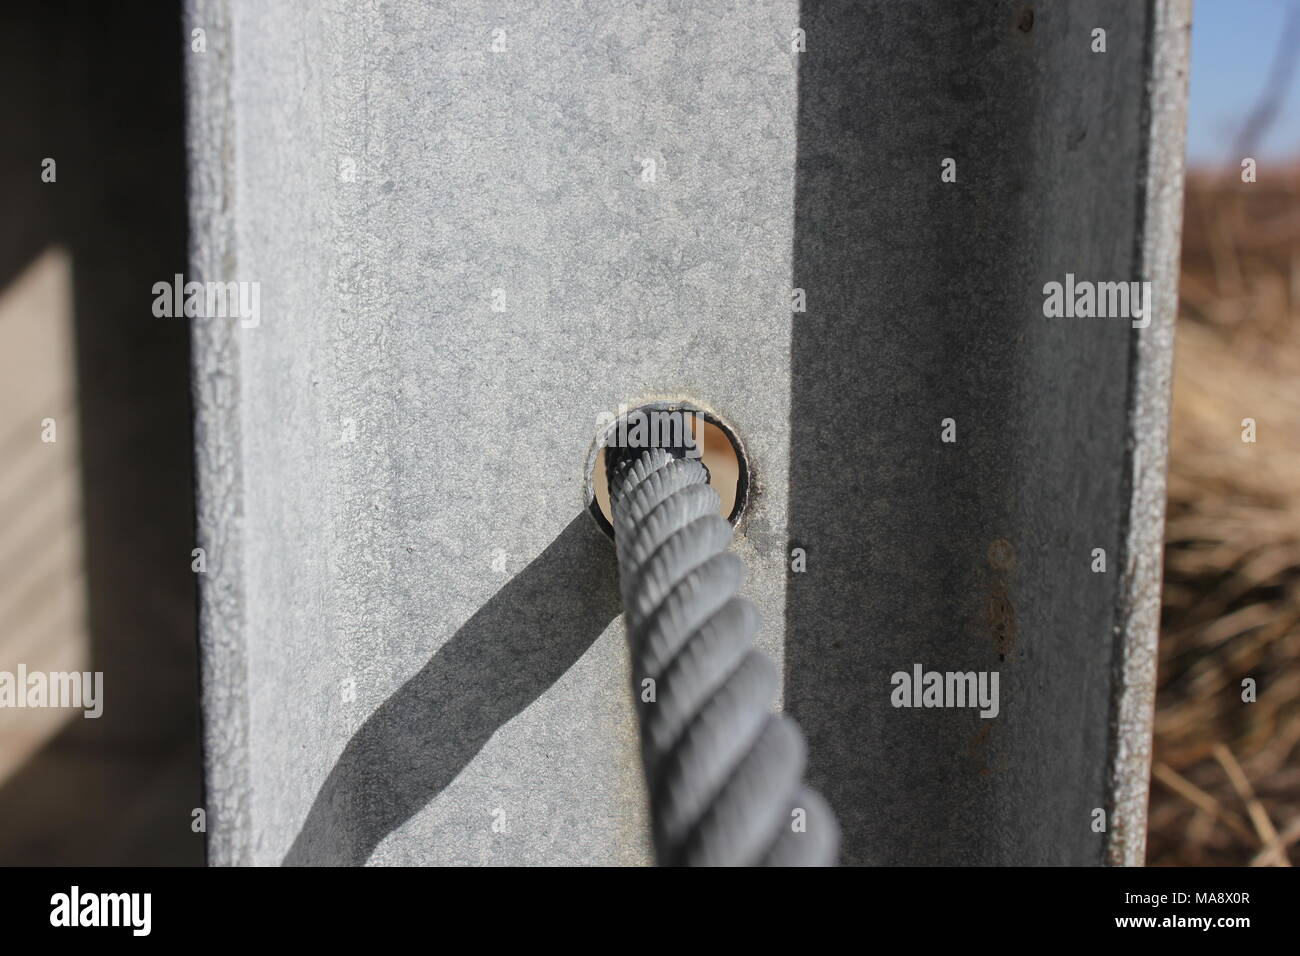 Architectural and structural detail of a steel code threading a steel ibeam column. - Stock Image